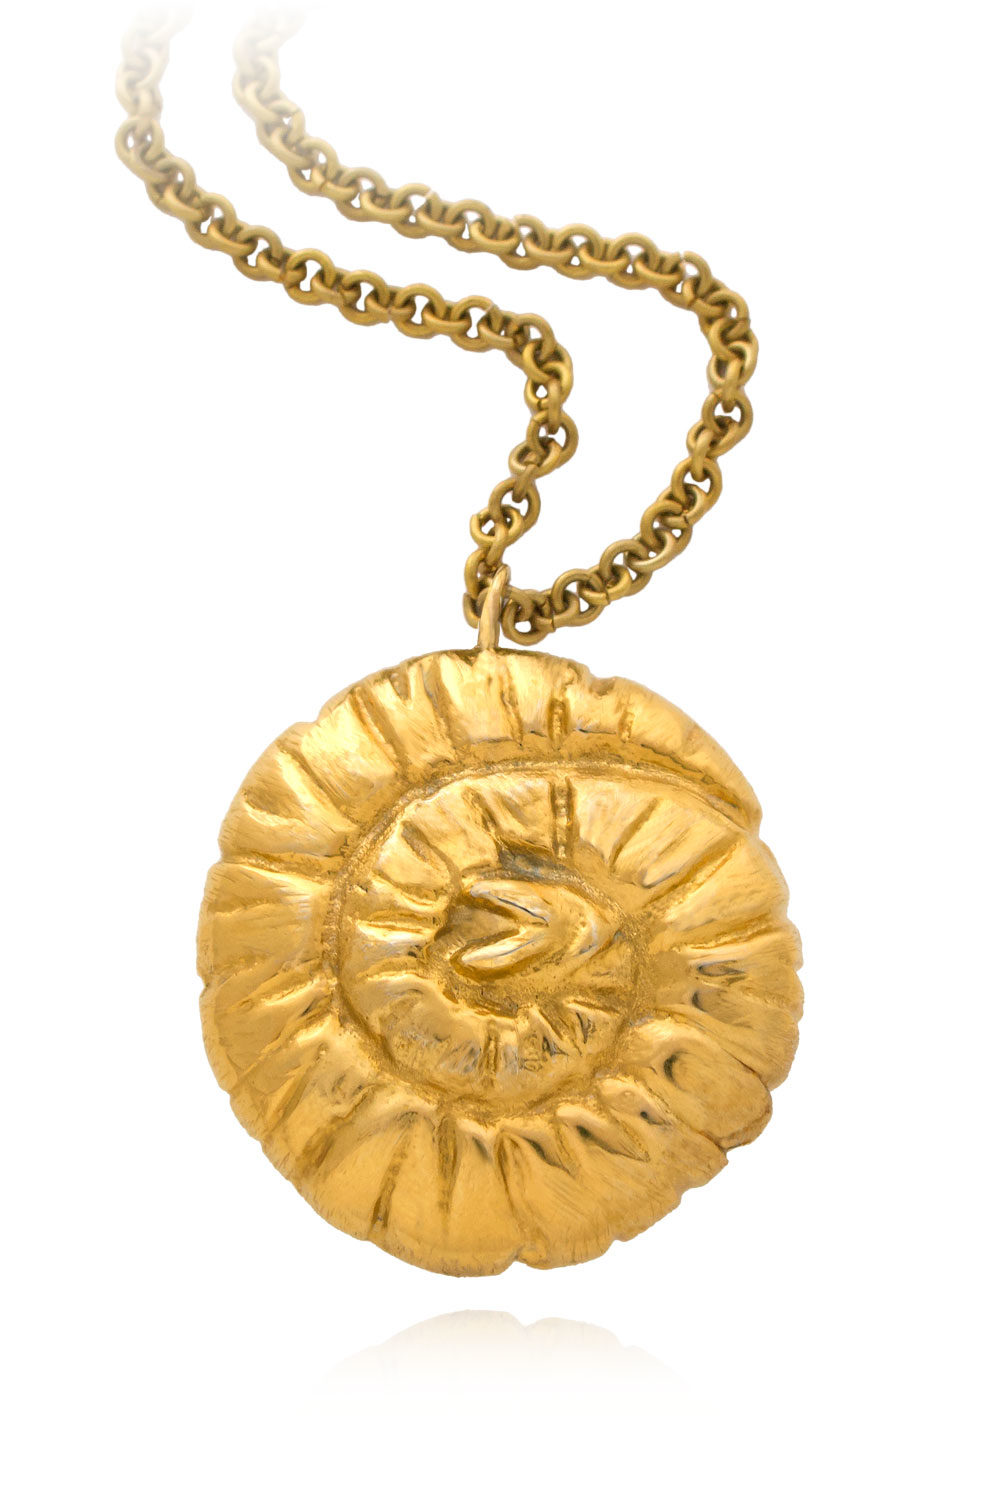 Spiralled Opulence Trunk Necklace by SHIKHAZURI